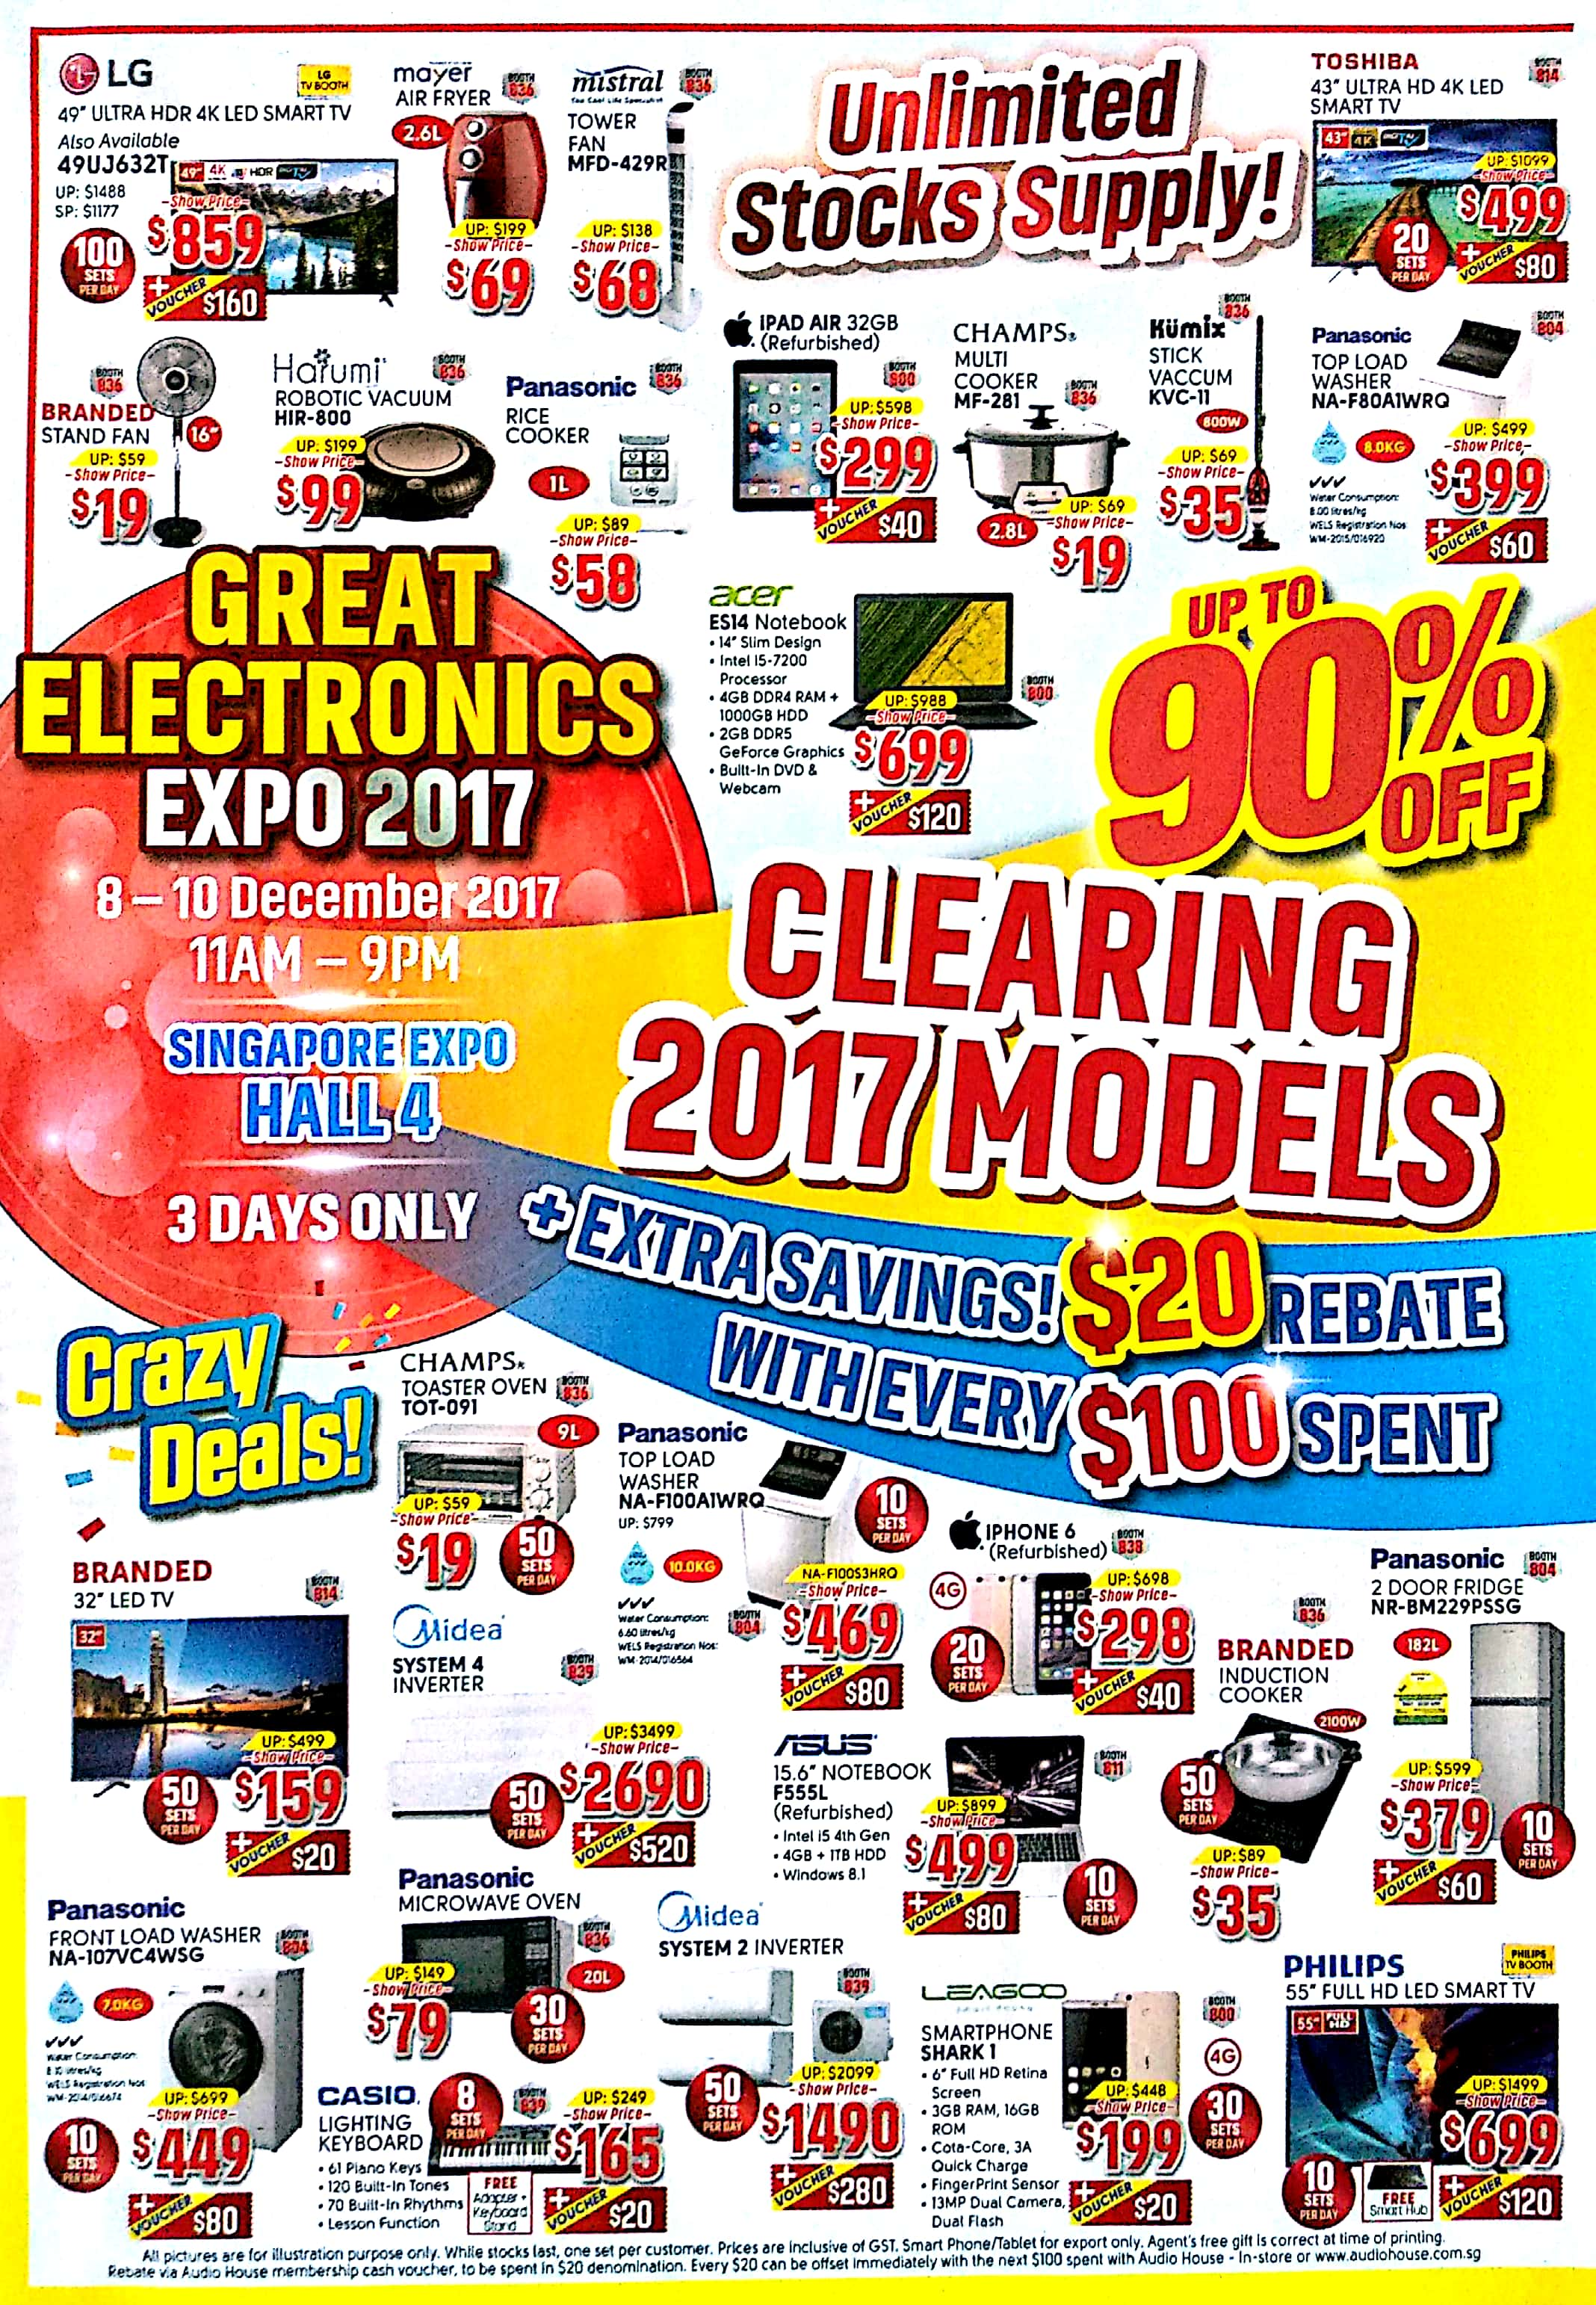 Great Electronics EXPO 2017 | 8 - 10 Dec 2017 | 11am - 9pm | Singapore EXPO | Brochure pg1